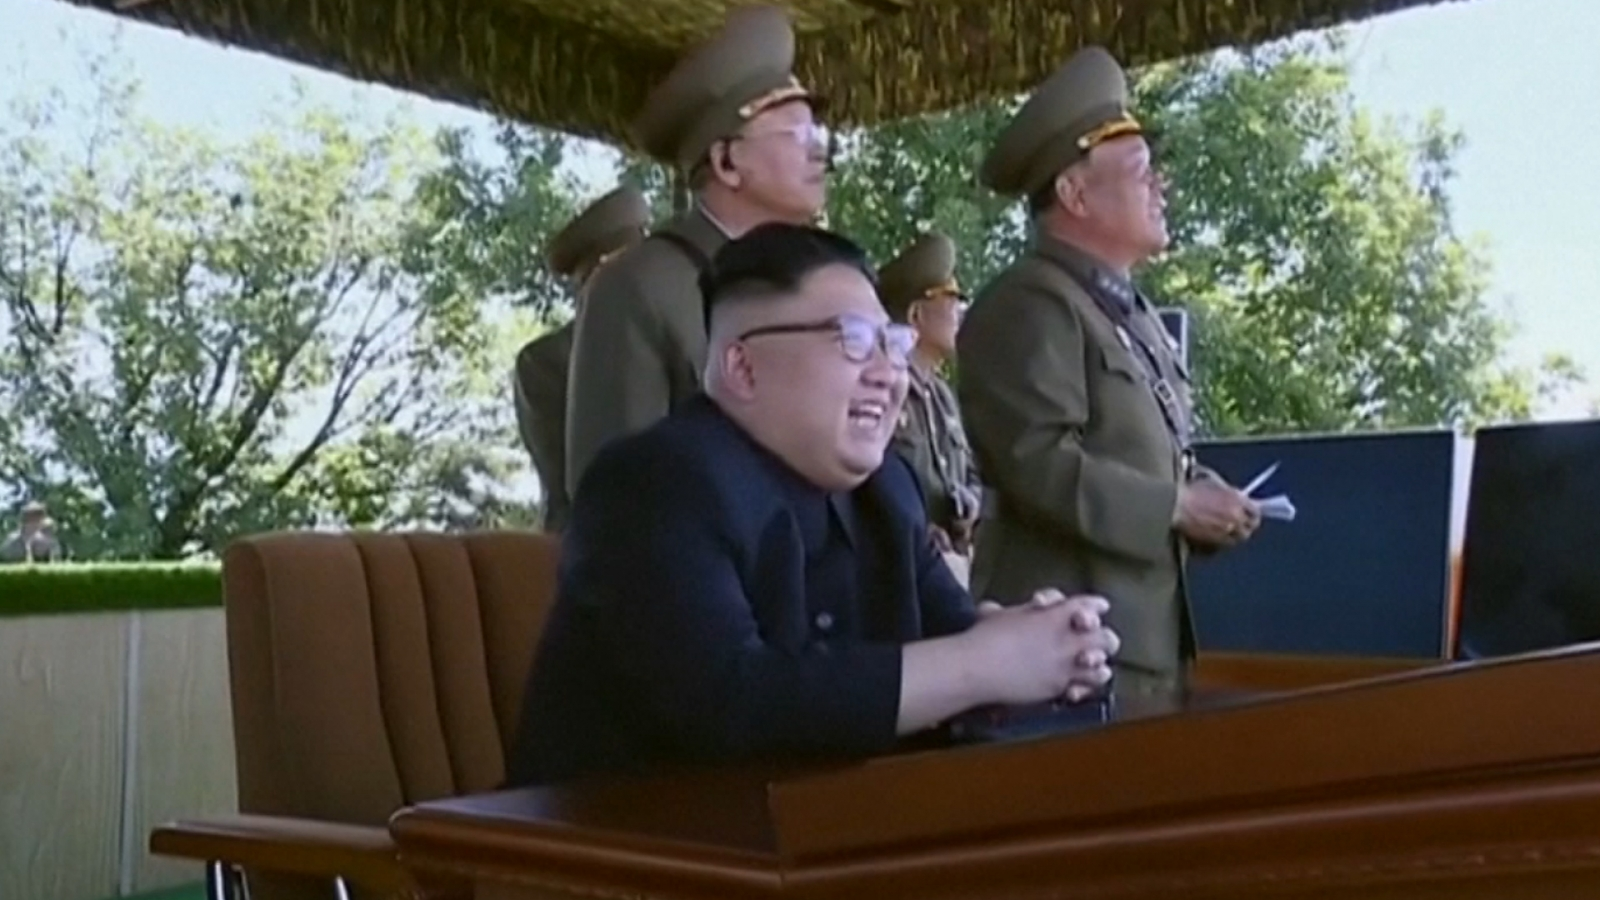 watch-a-childlike-kim-jong-un-chuckle-at-north-korean-military-display